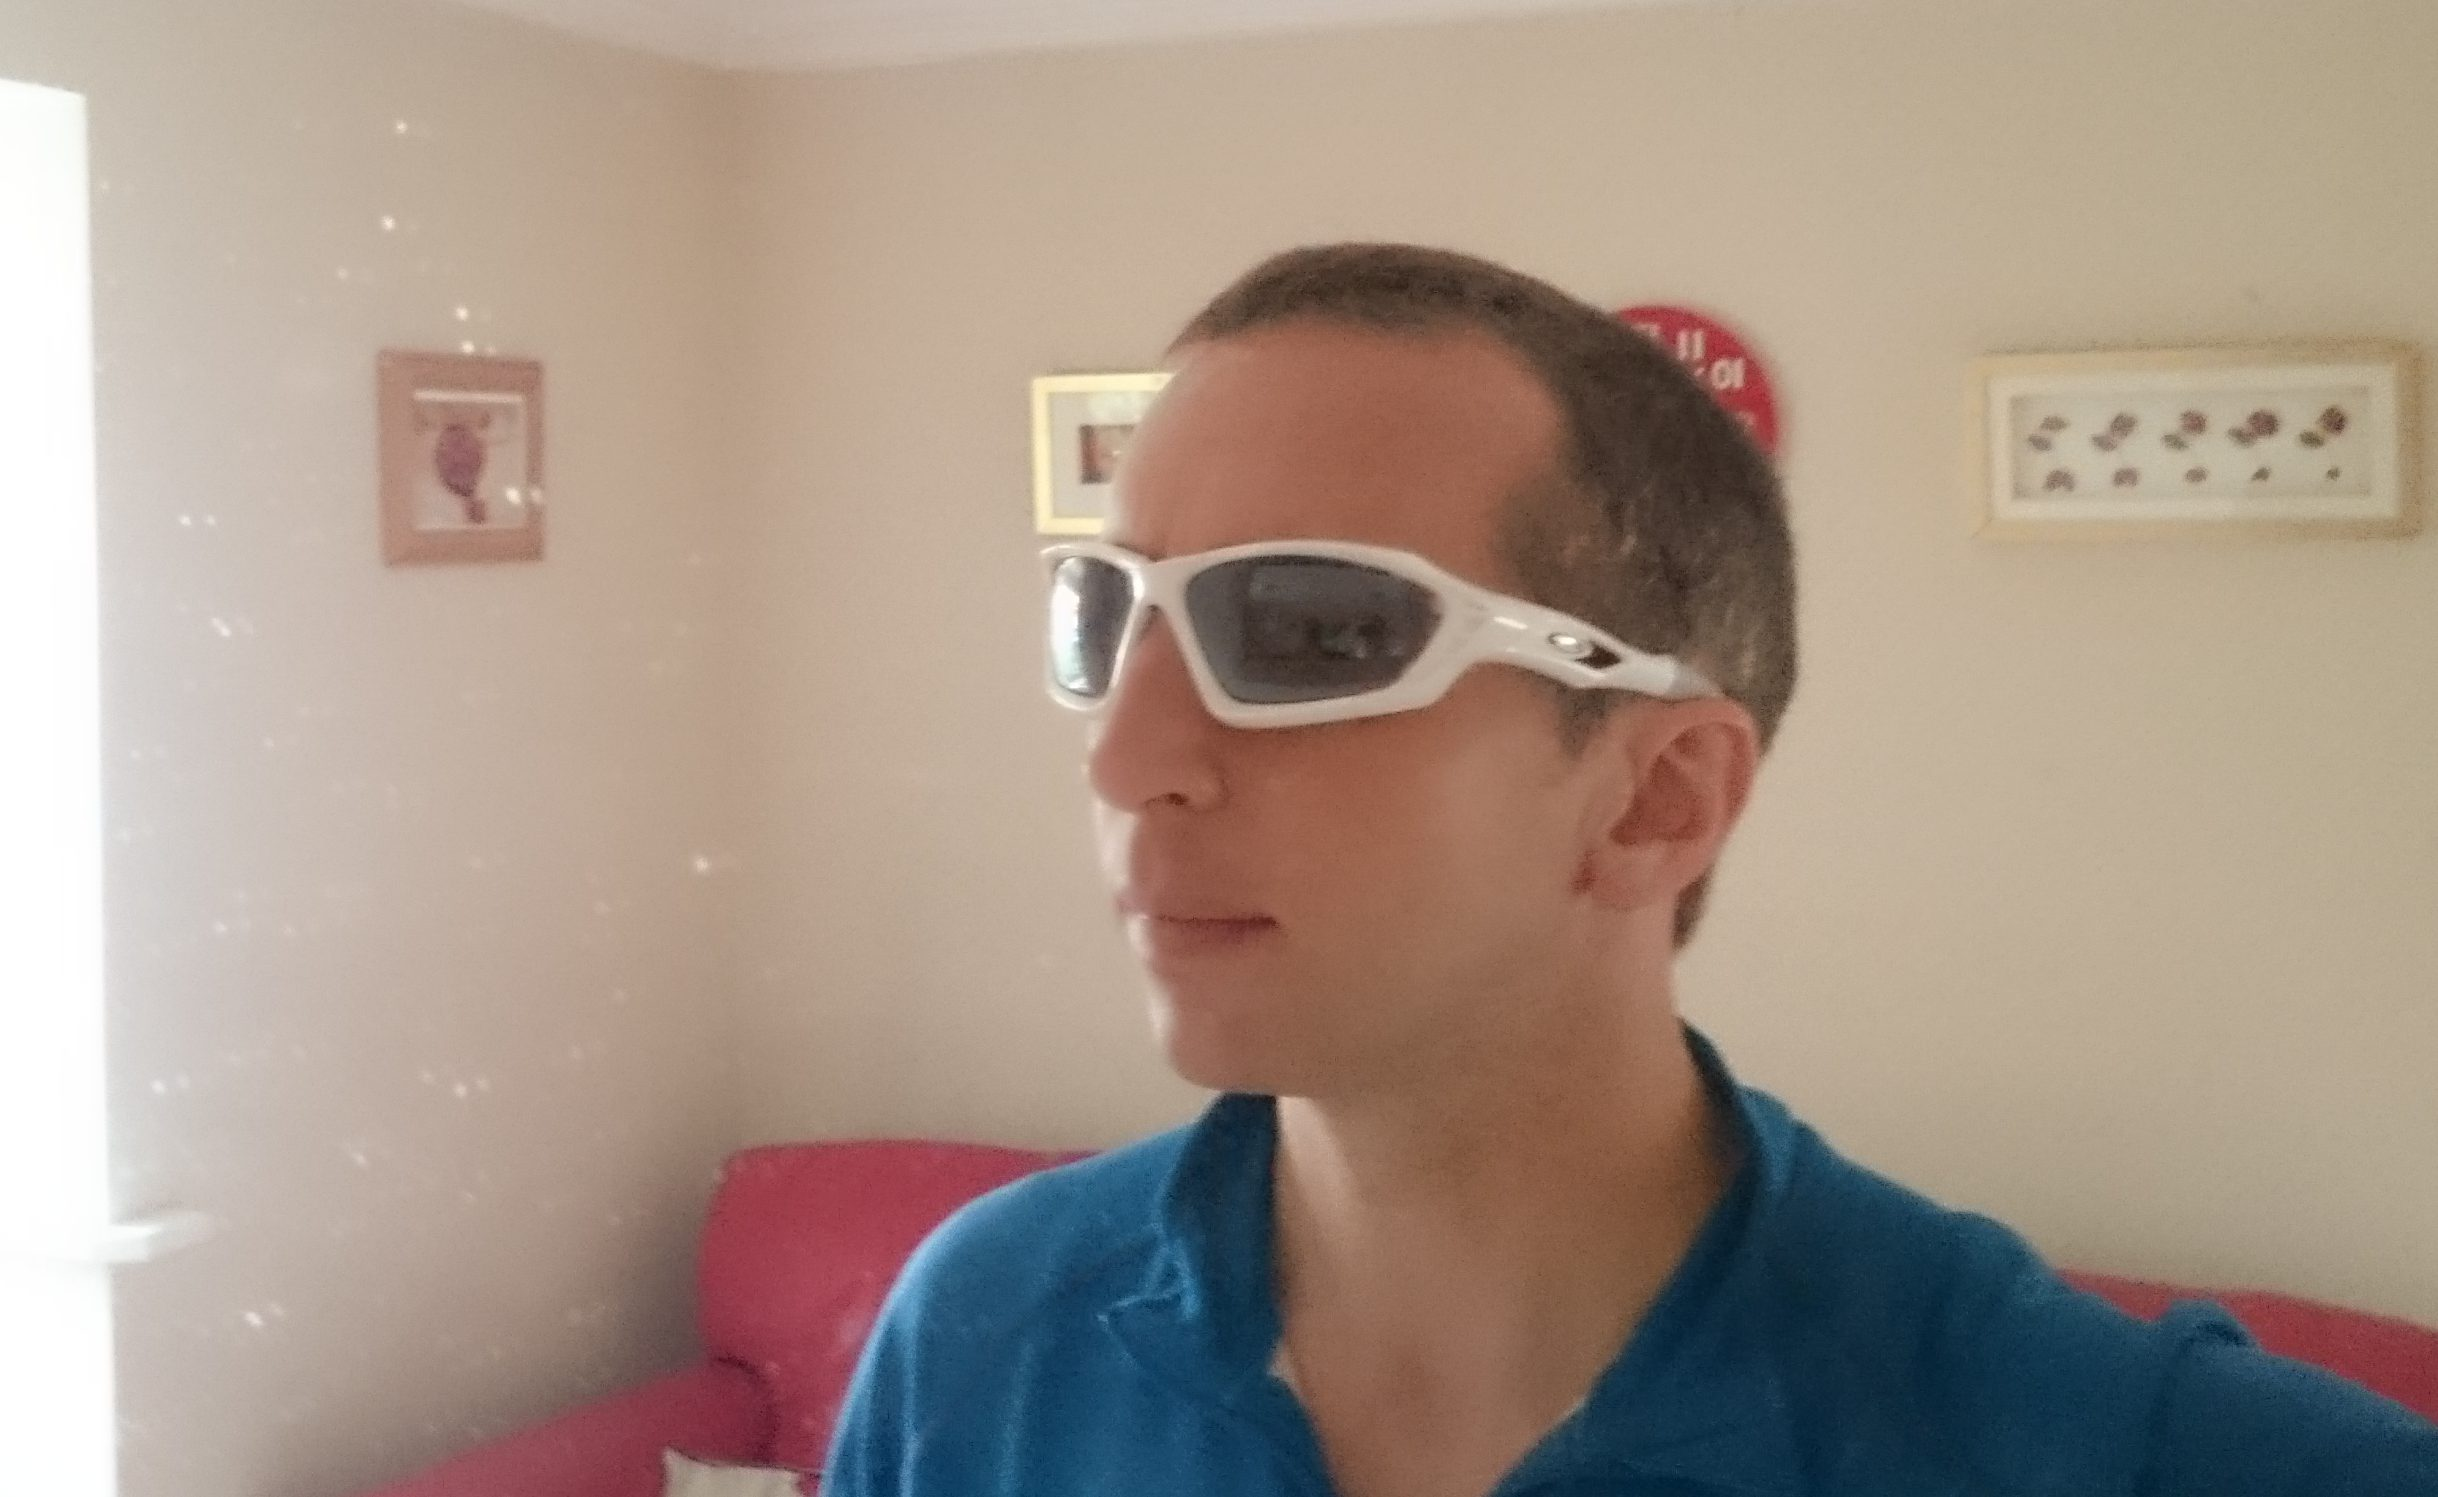 Endura Mullet Sunglasses